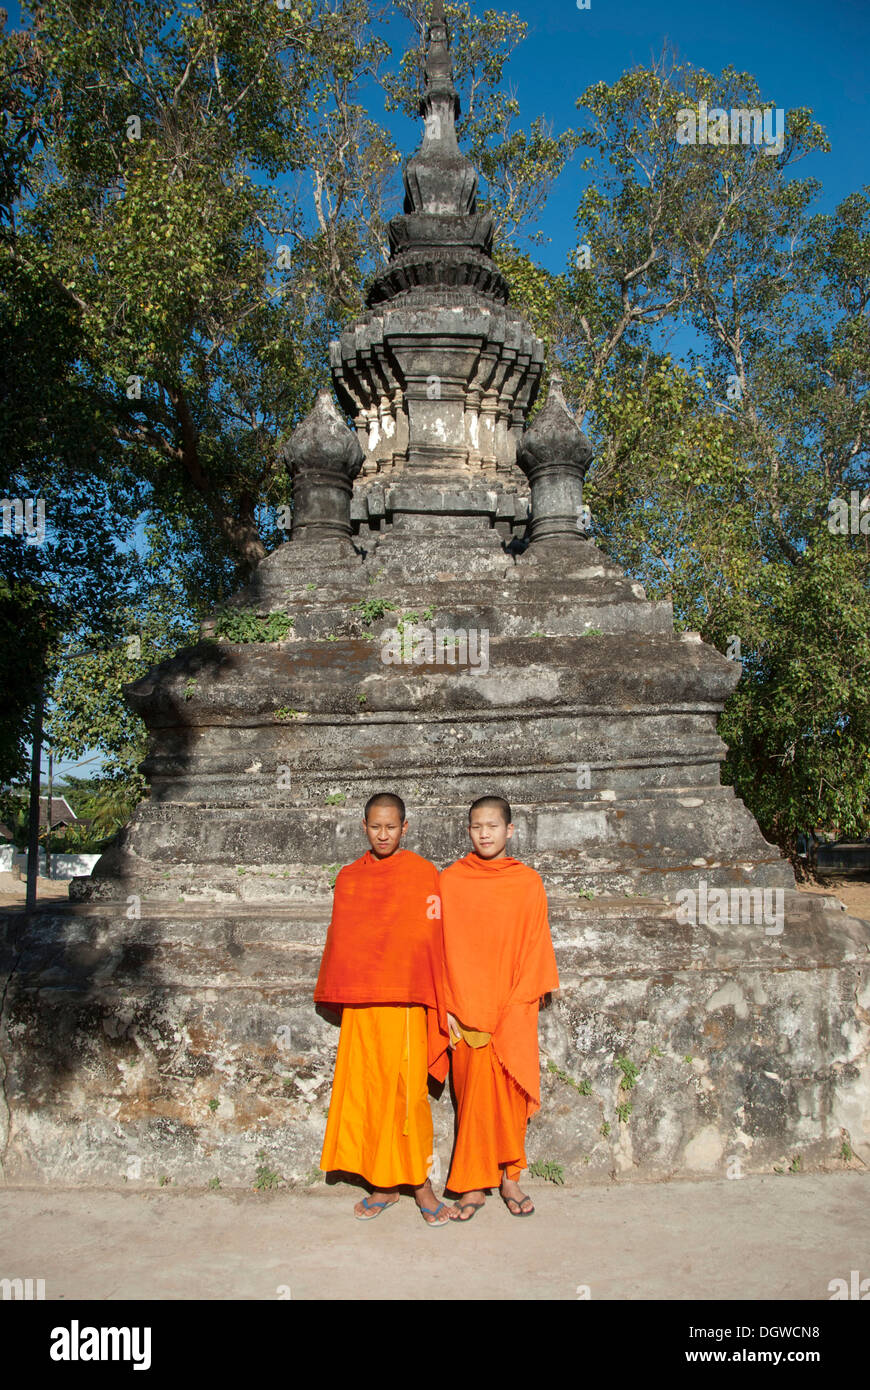 Two monks in orange robes in front of a stupa, novices, Vat Aham, Wat, Luang Prabang province, Laos, Southeast Asia, Asia - Stock Image